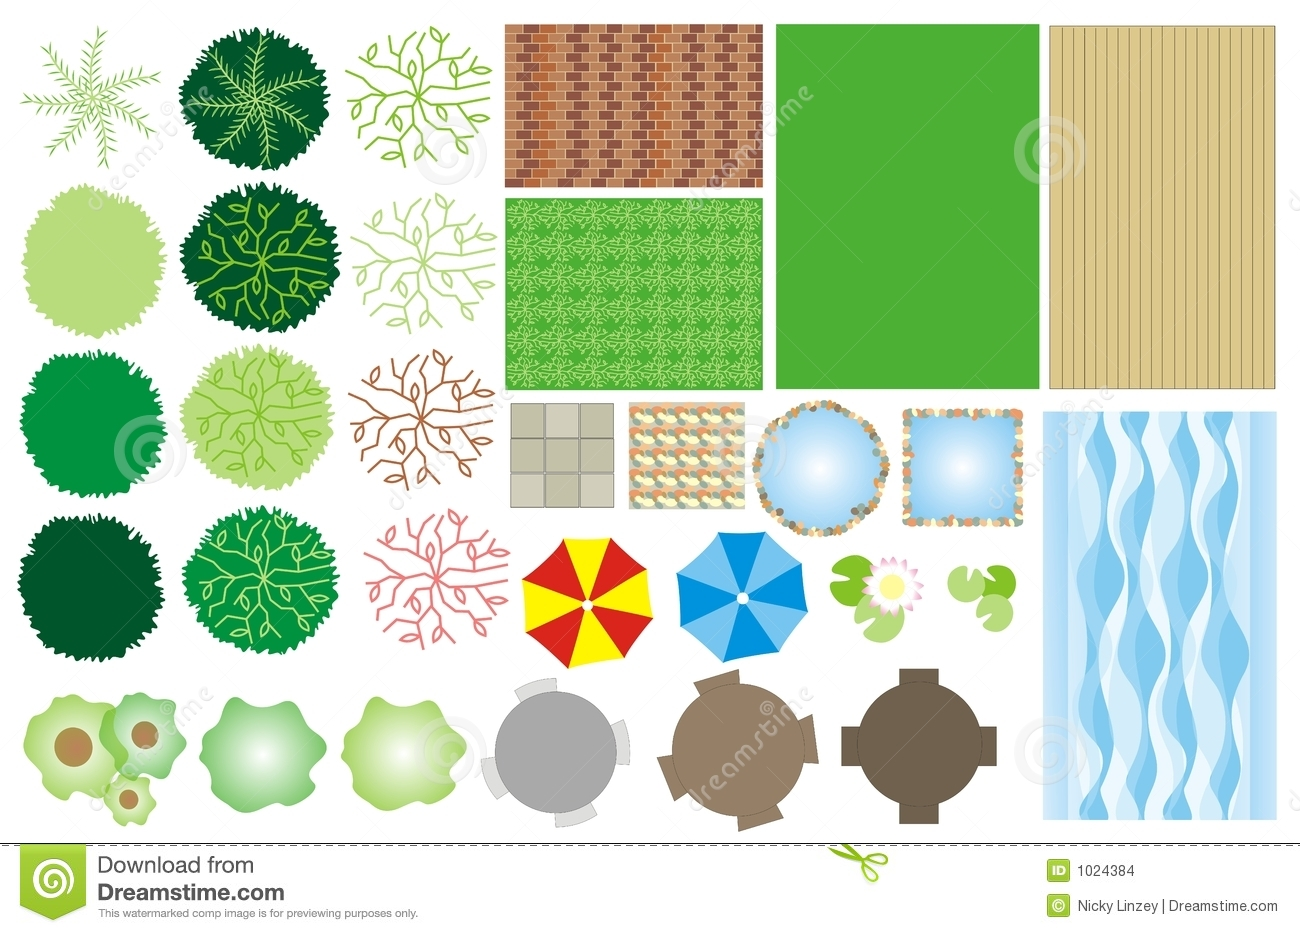 free garden design clipart - photo #30